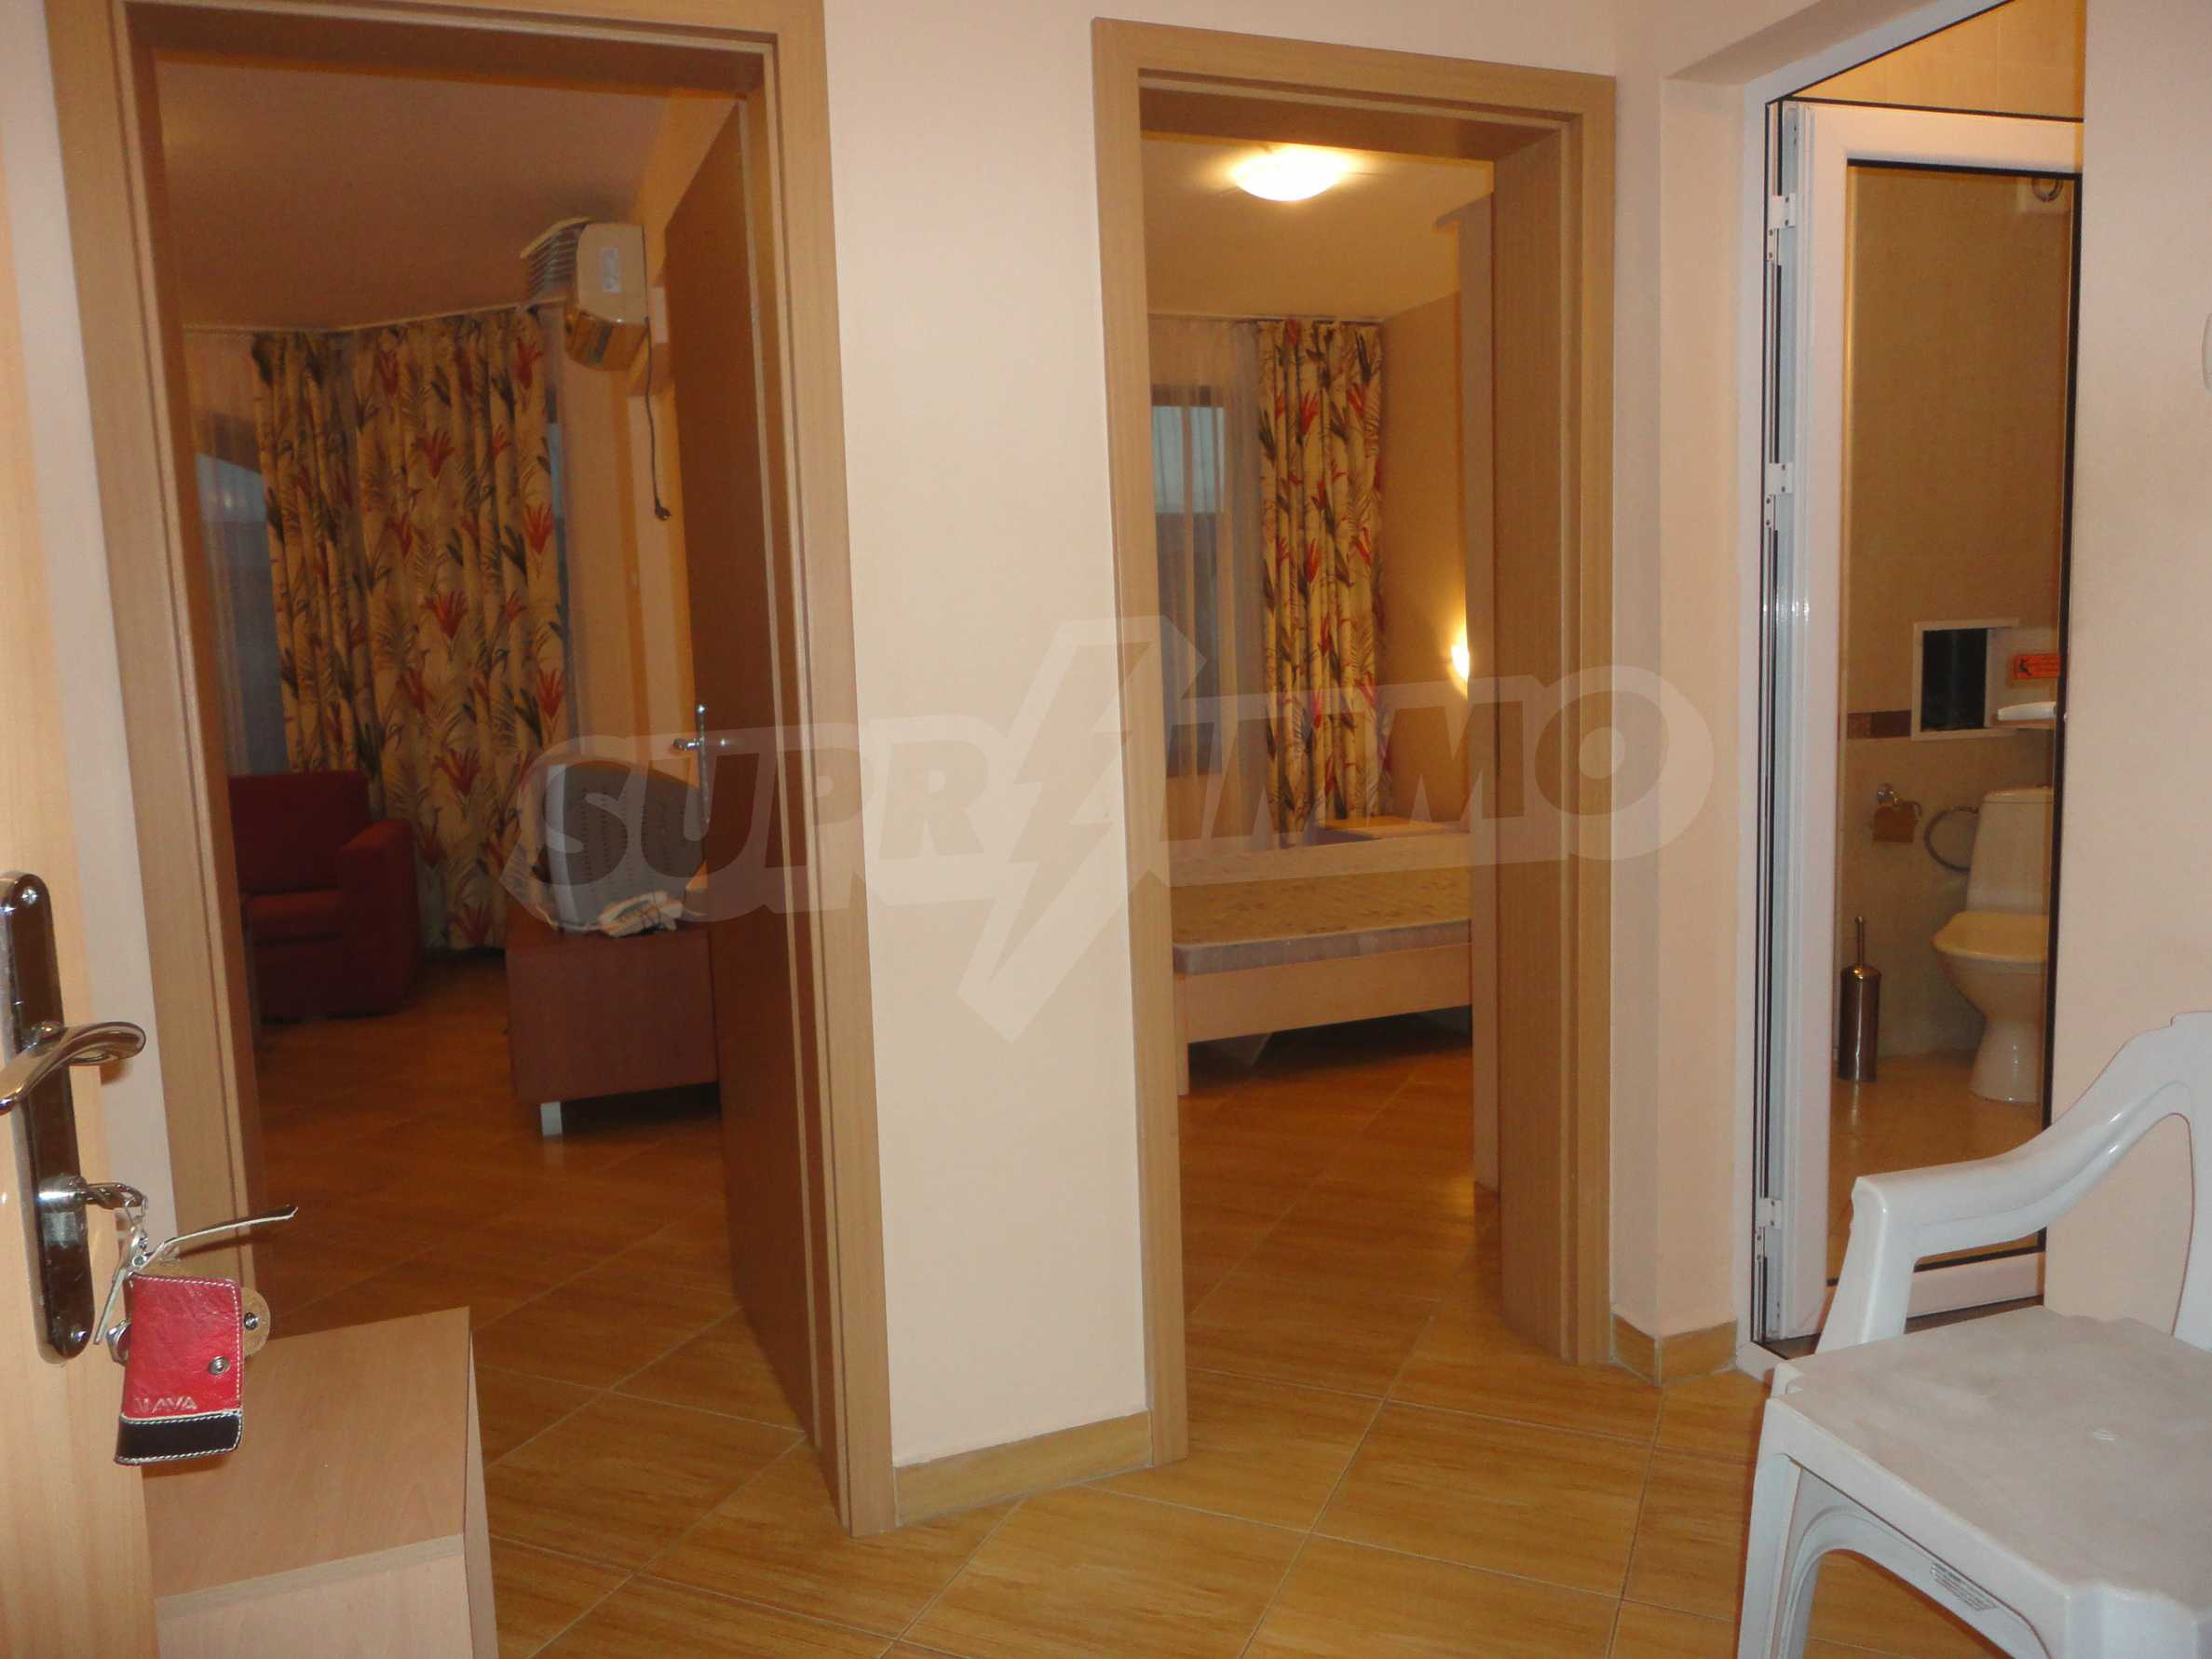 One-bedroom apartment in Golden Dreams complex in Sunny beach 5